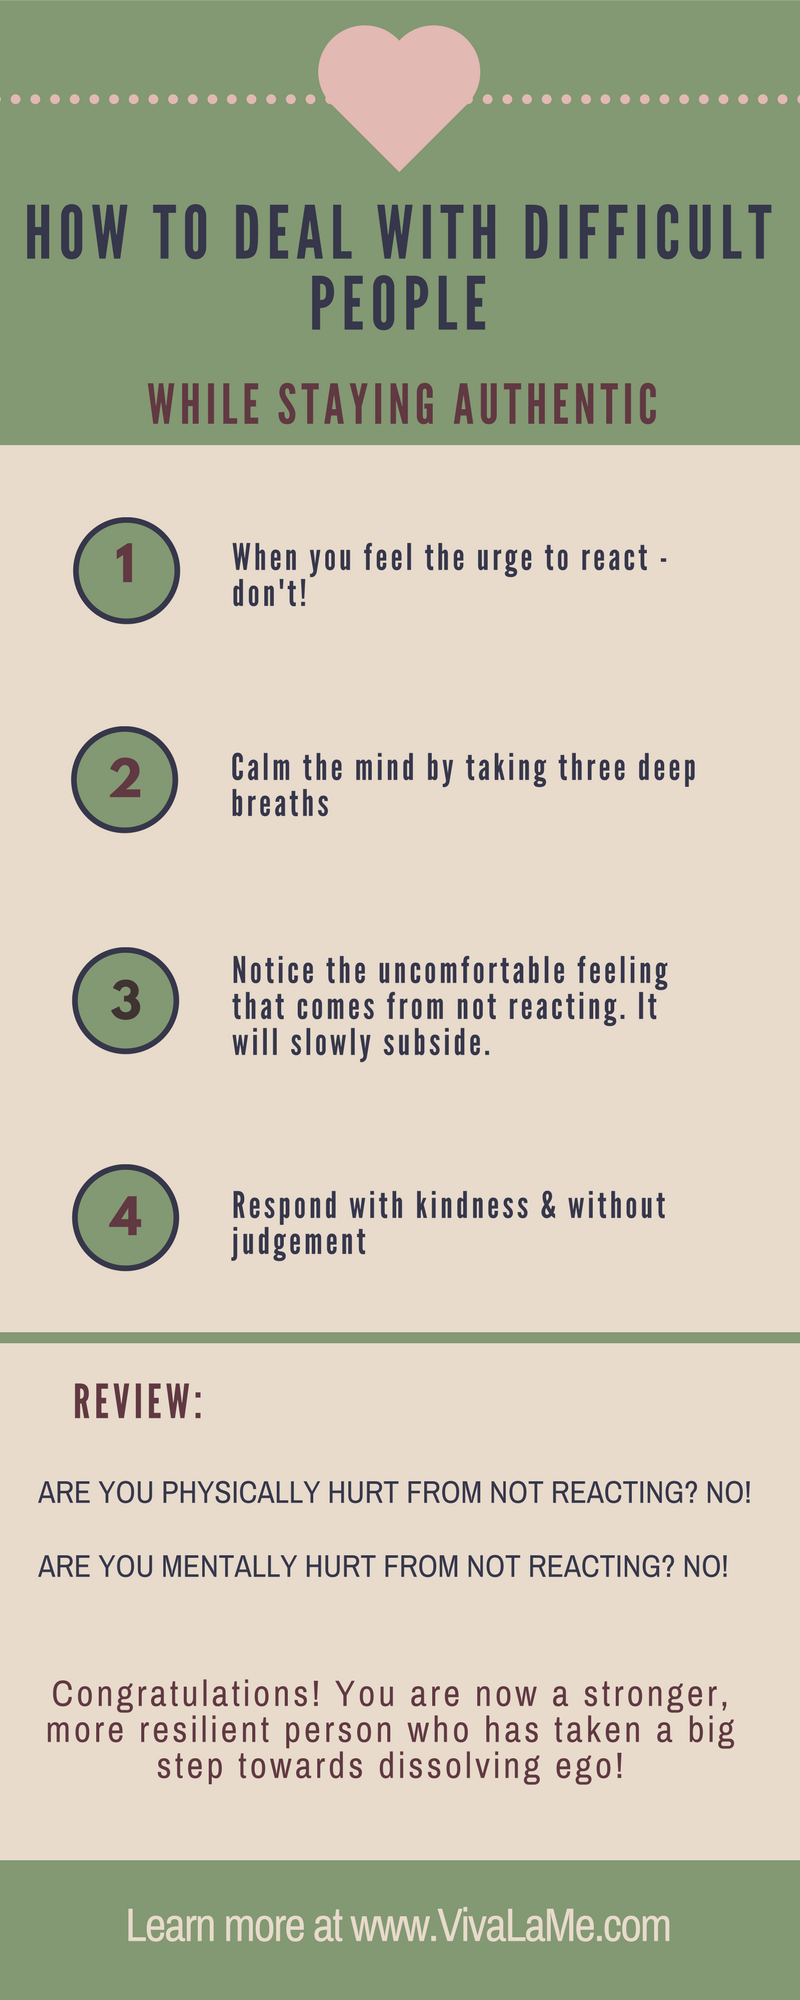 How To Deal With Difficult People And Stay Authentic